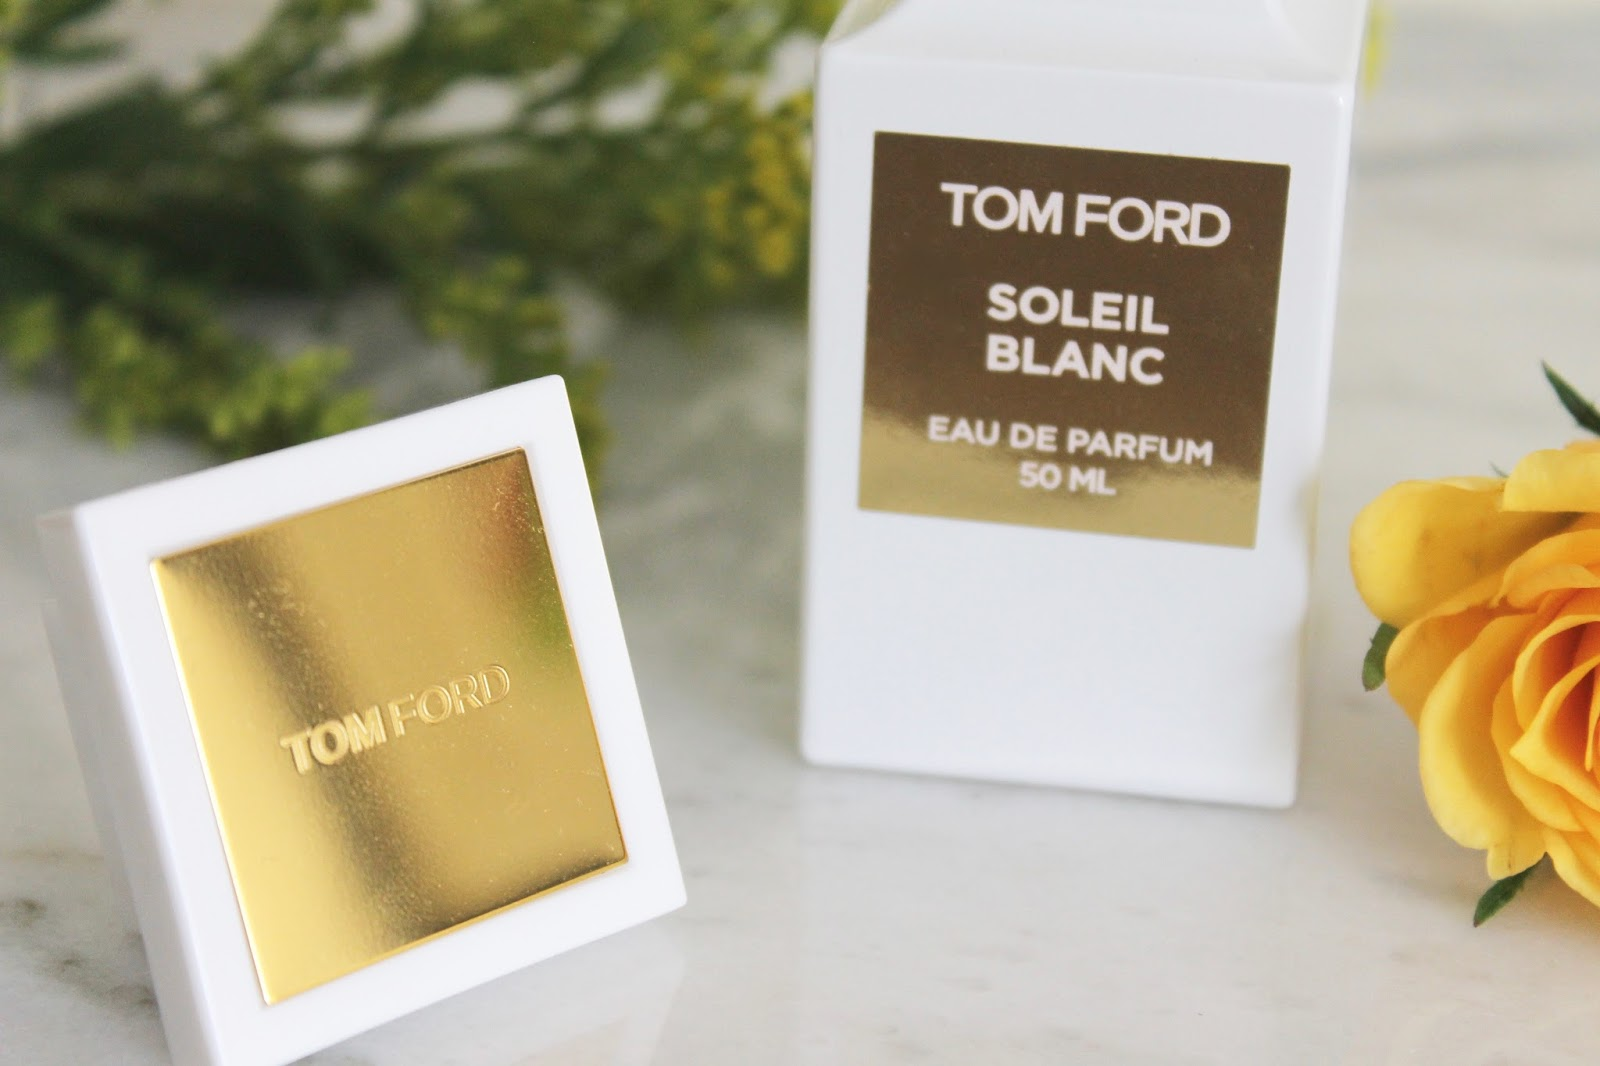 NƯỚC HOA TOM FORD SOLEIL BLANC  FOR MEN & WOMEN - BEST SELLER 2016